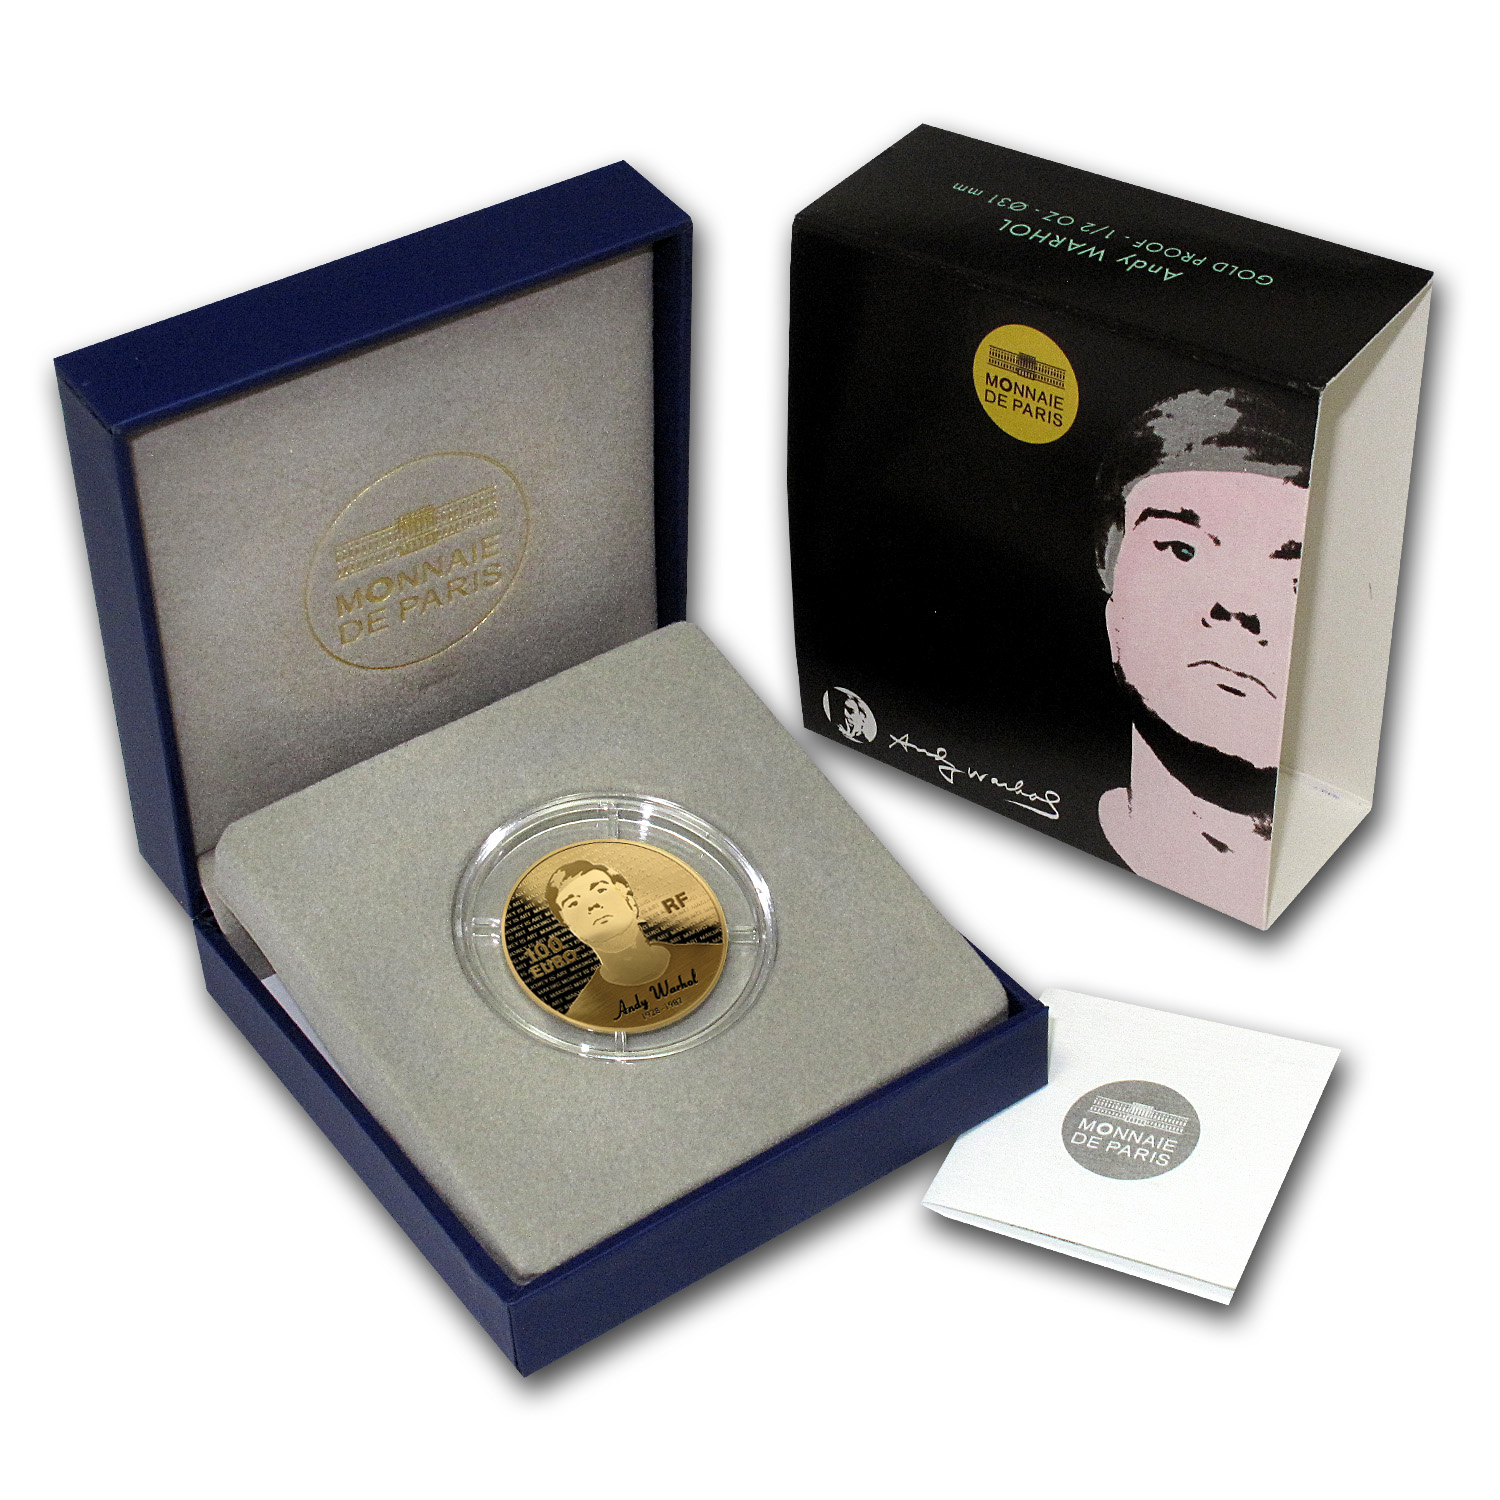 2011 1/2 oz Proof Gold Series of French Painters Andy Warhol